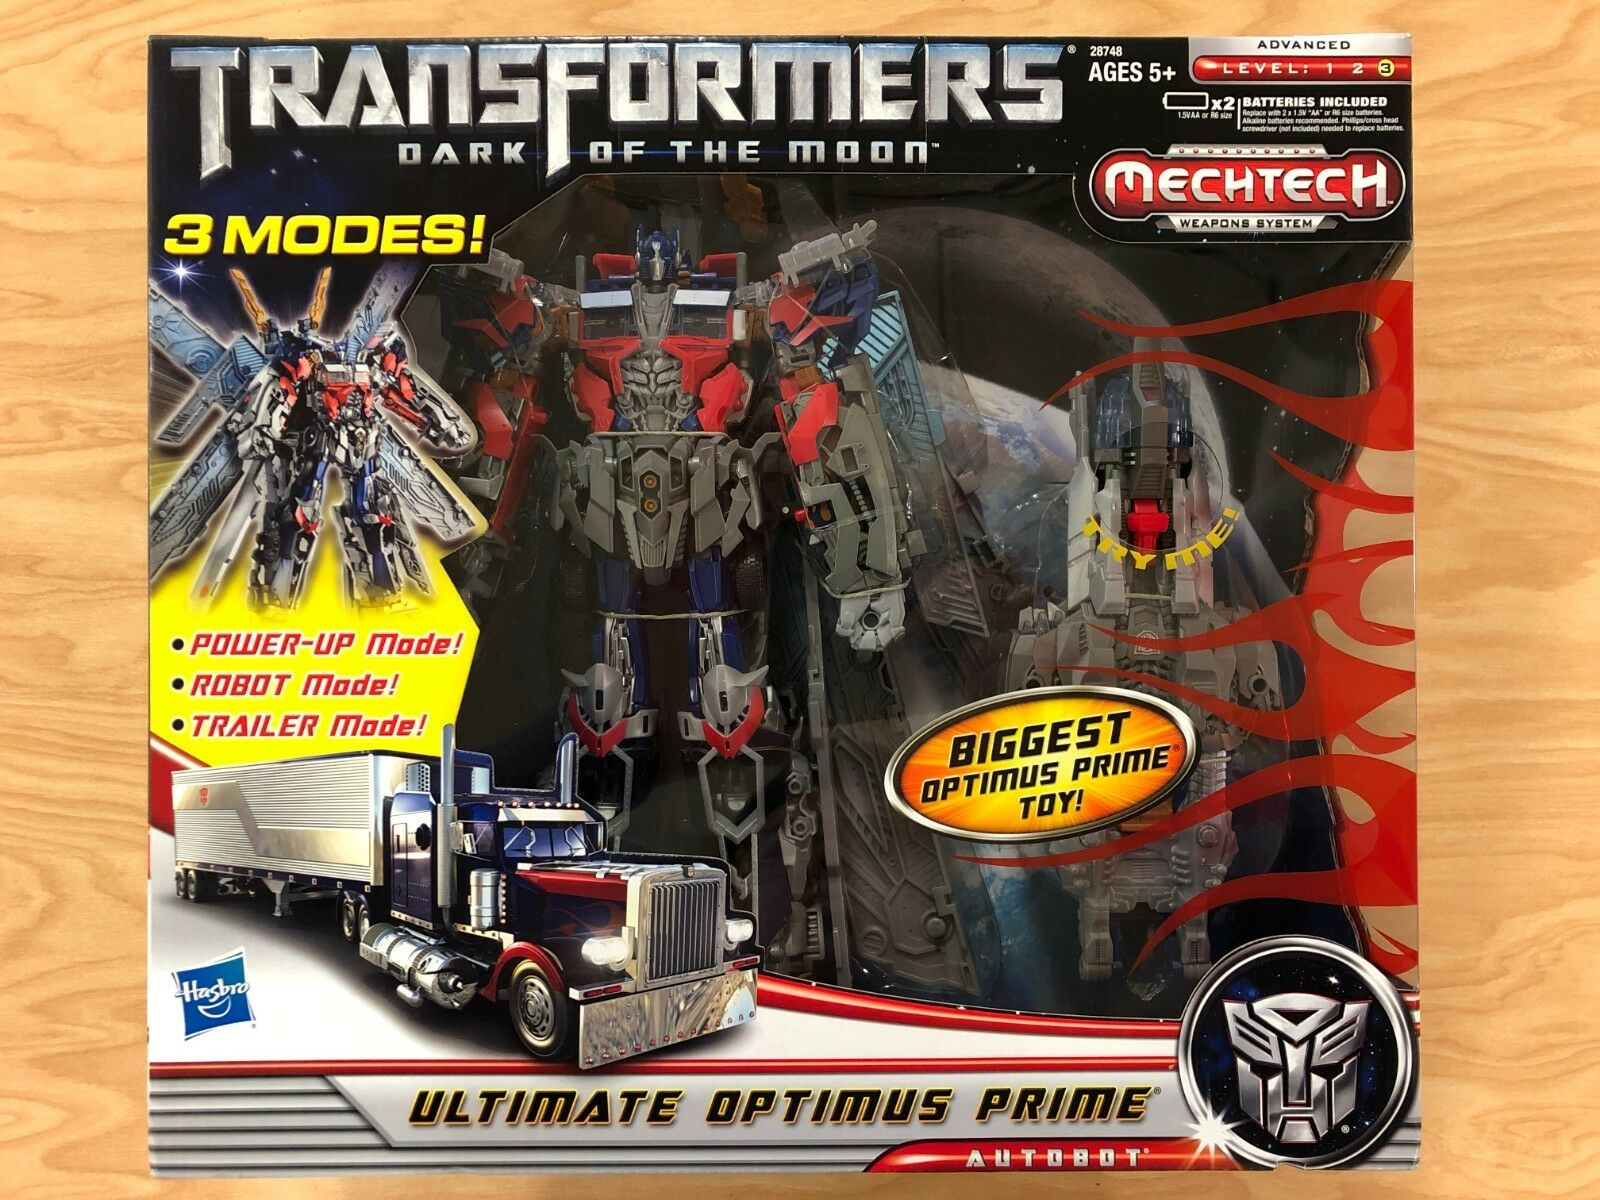 Hasbro Transformers Dark of of of the Moon Mechtech Ultimate Optimus Prime NEW MISB ed8916